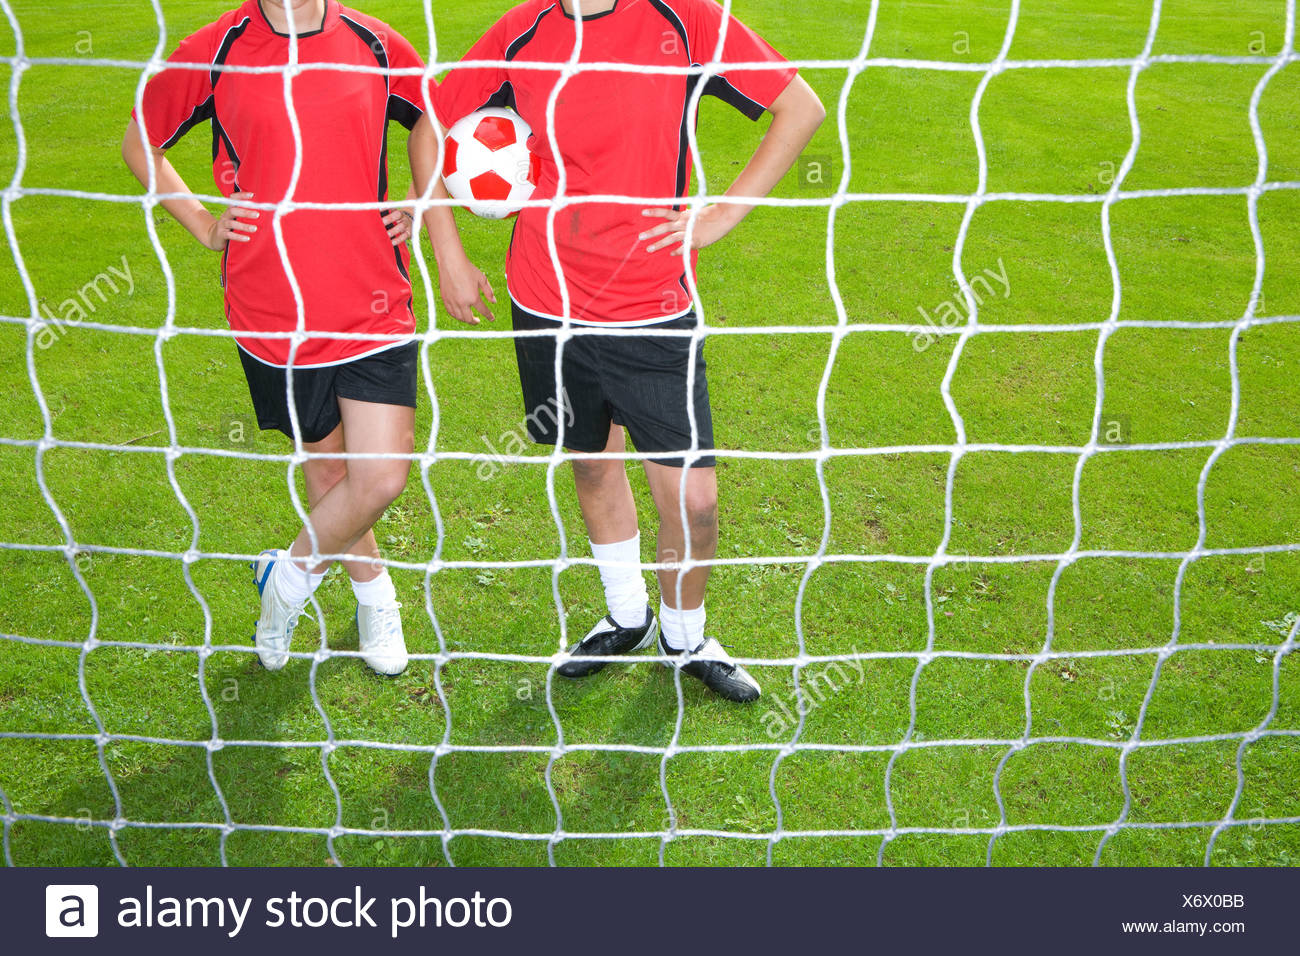 Soccer players standing at goal net - Stock Image